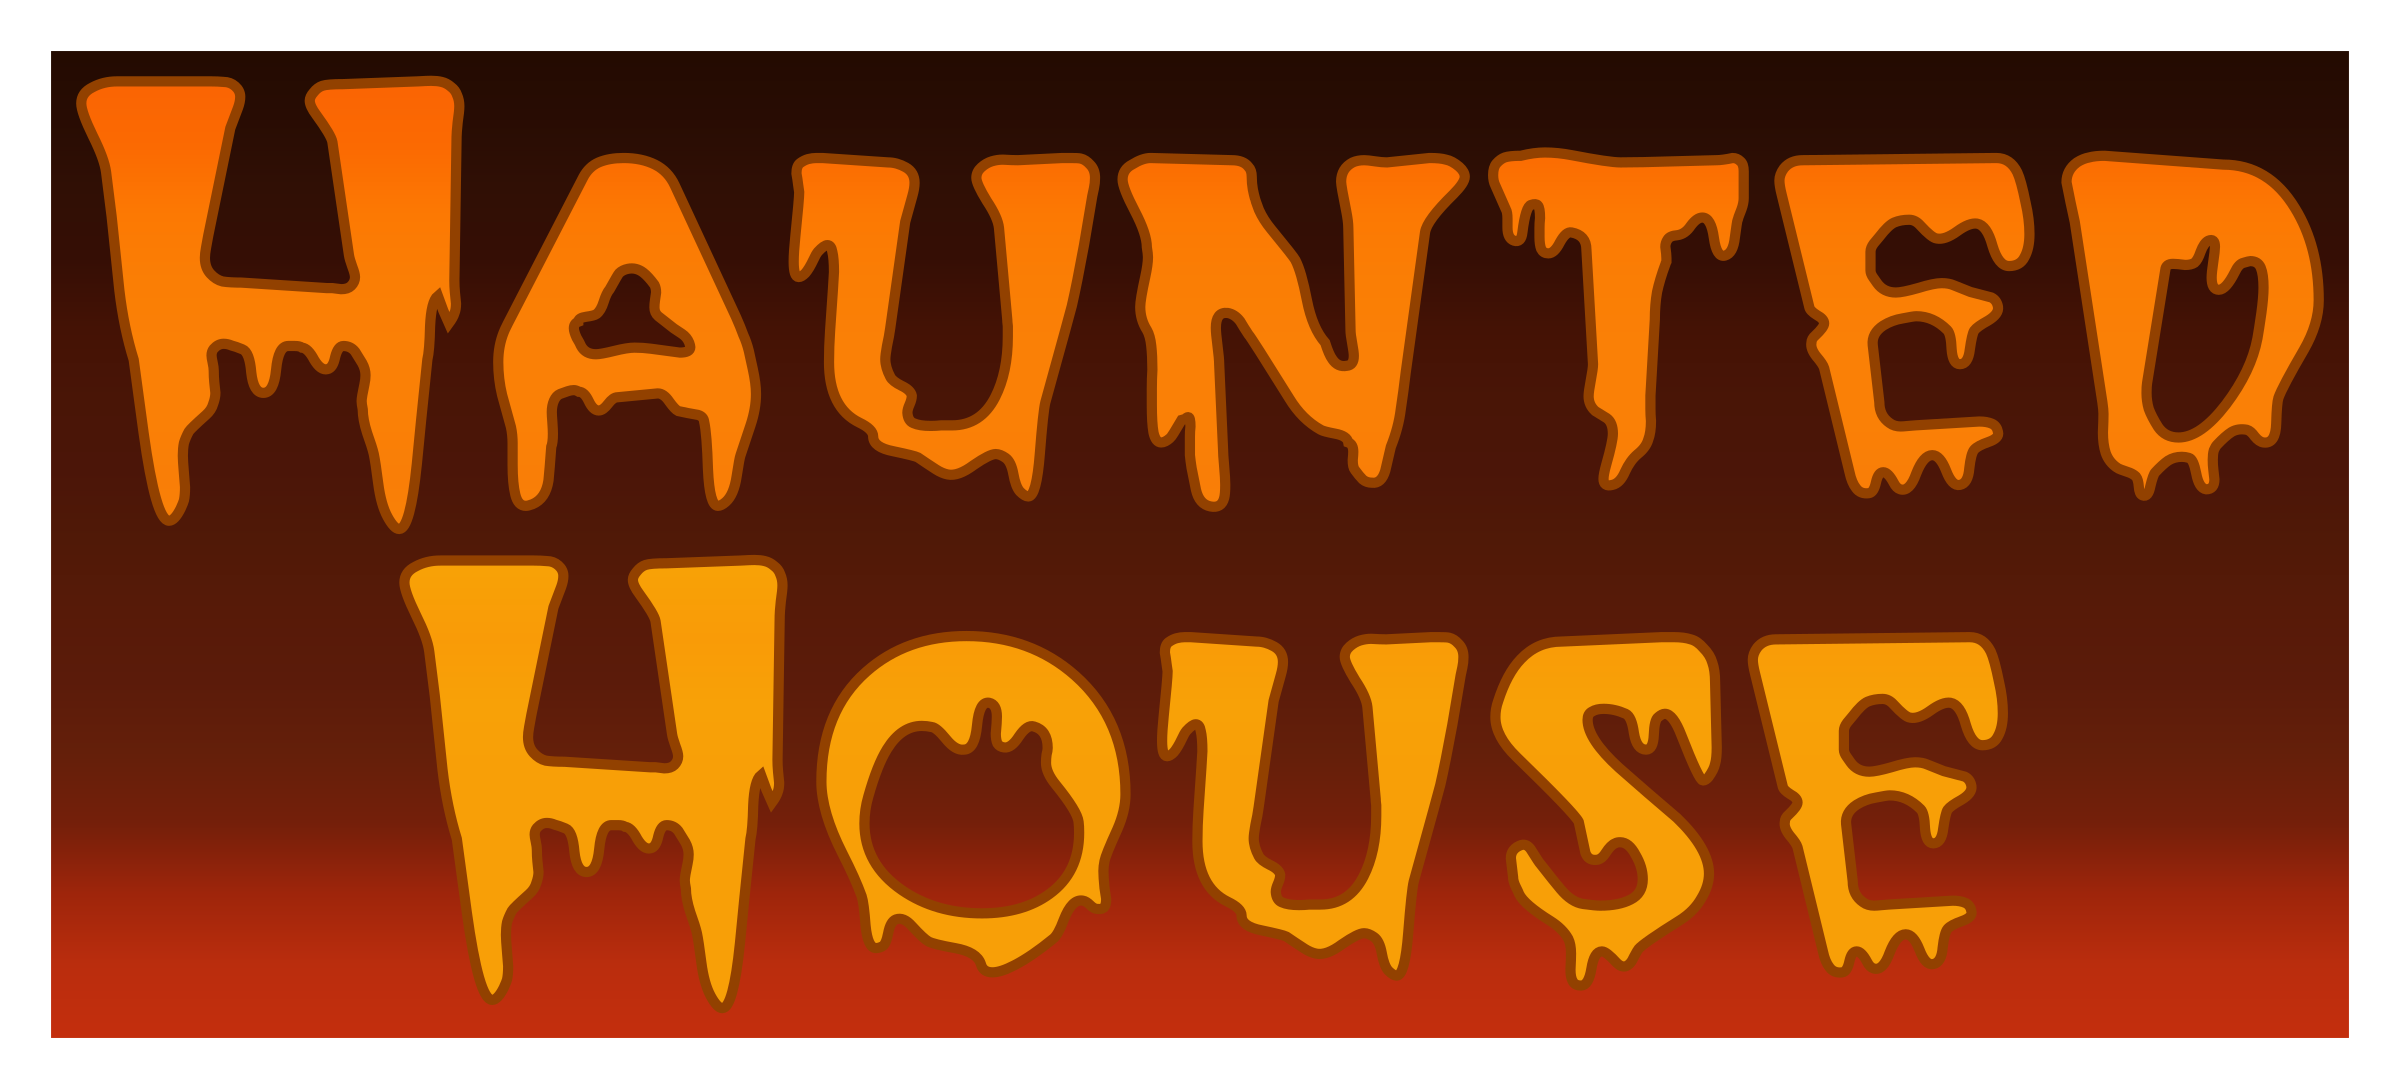 Hounted House Typography by Arvin61r58